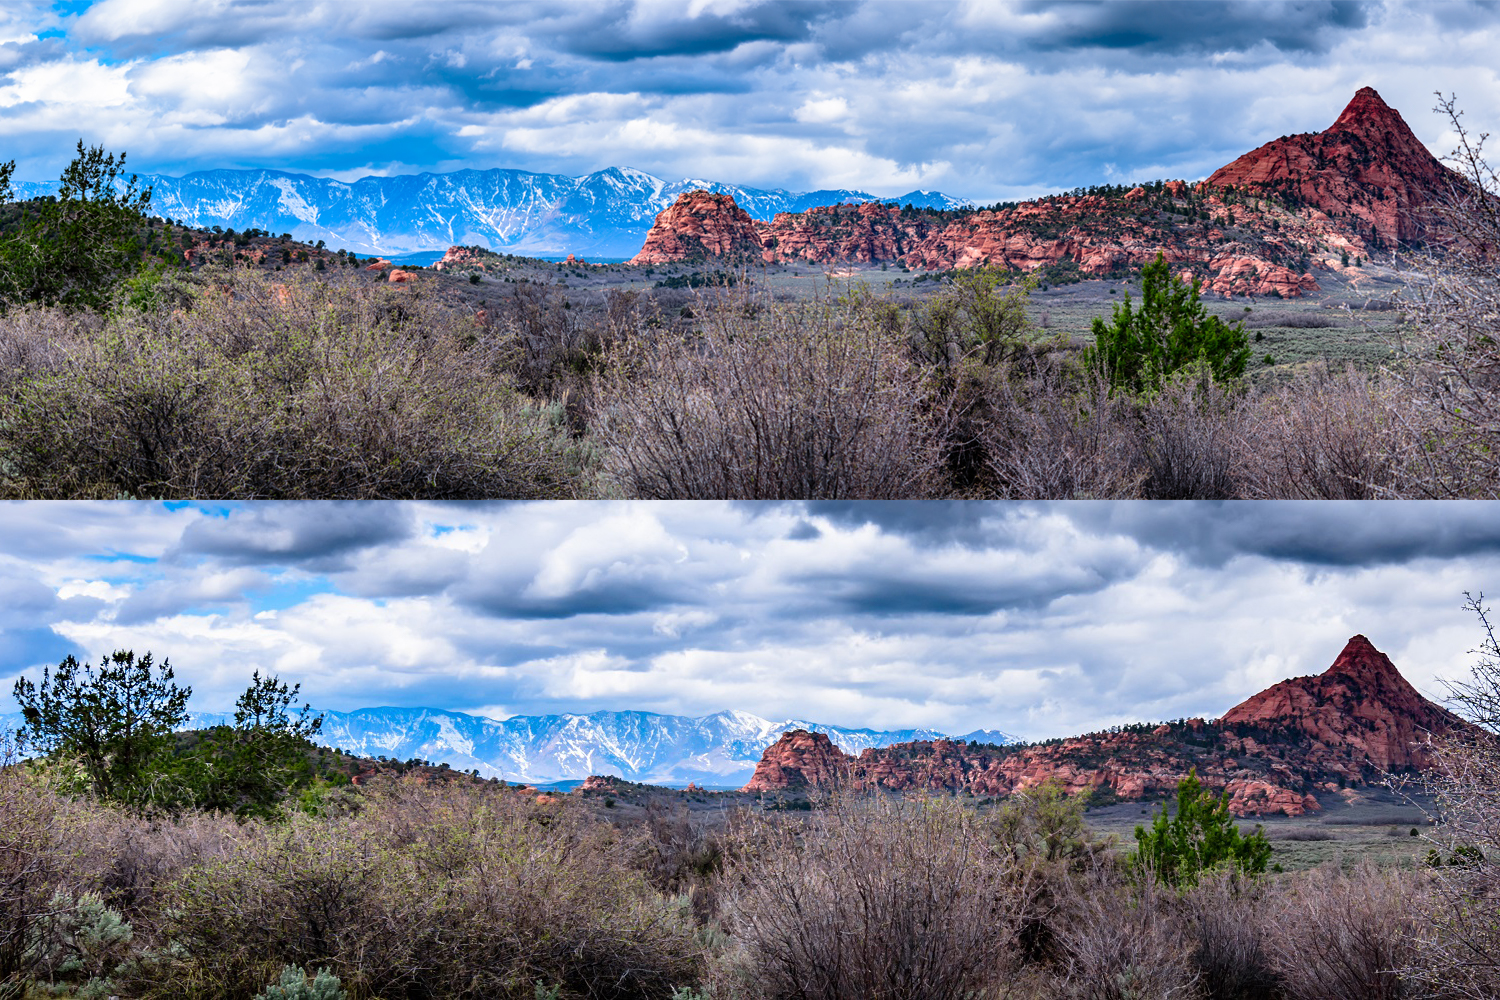 Red Butte - Panorama vs Wide Angle - This is from my trip to Utah last March. We drove into the northern part of Zion National Park and took a short walk down the Hop Valley Trail.The light was coming through the clouds and started hitting Black Ridge in the background when we weren't far down the trail.